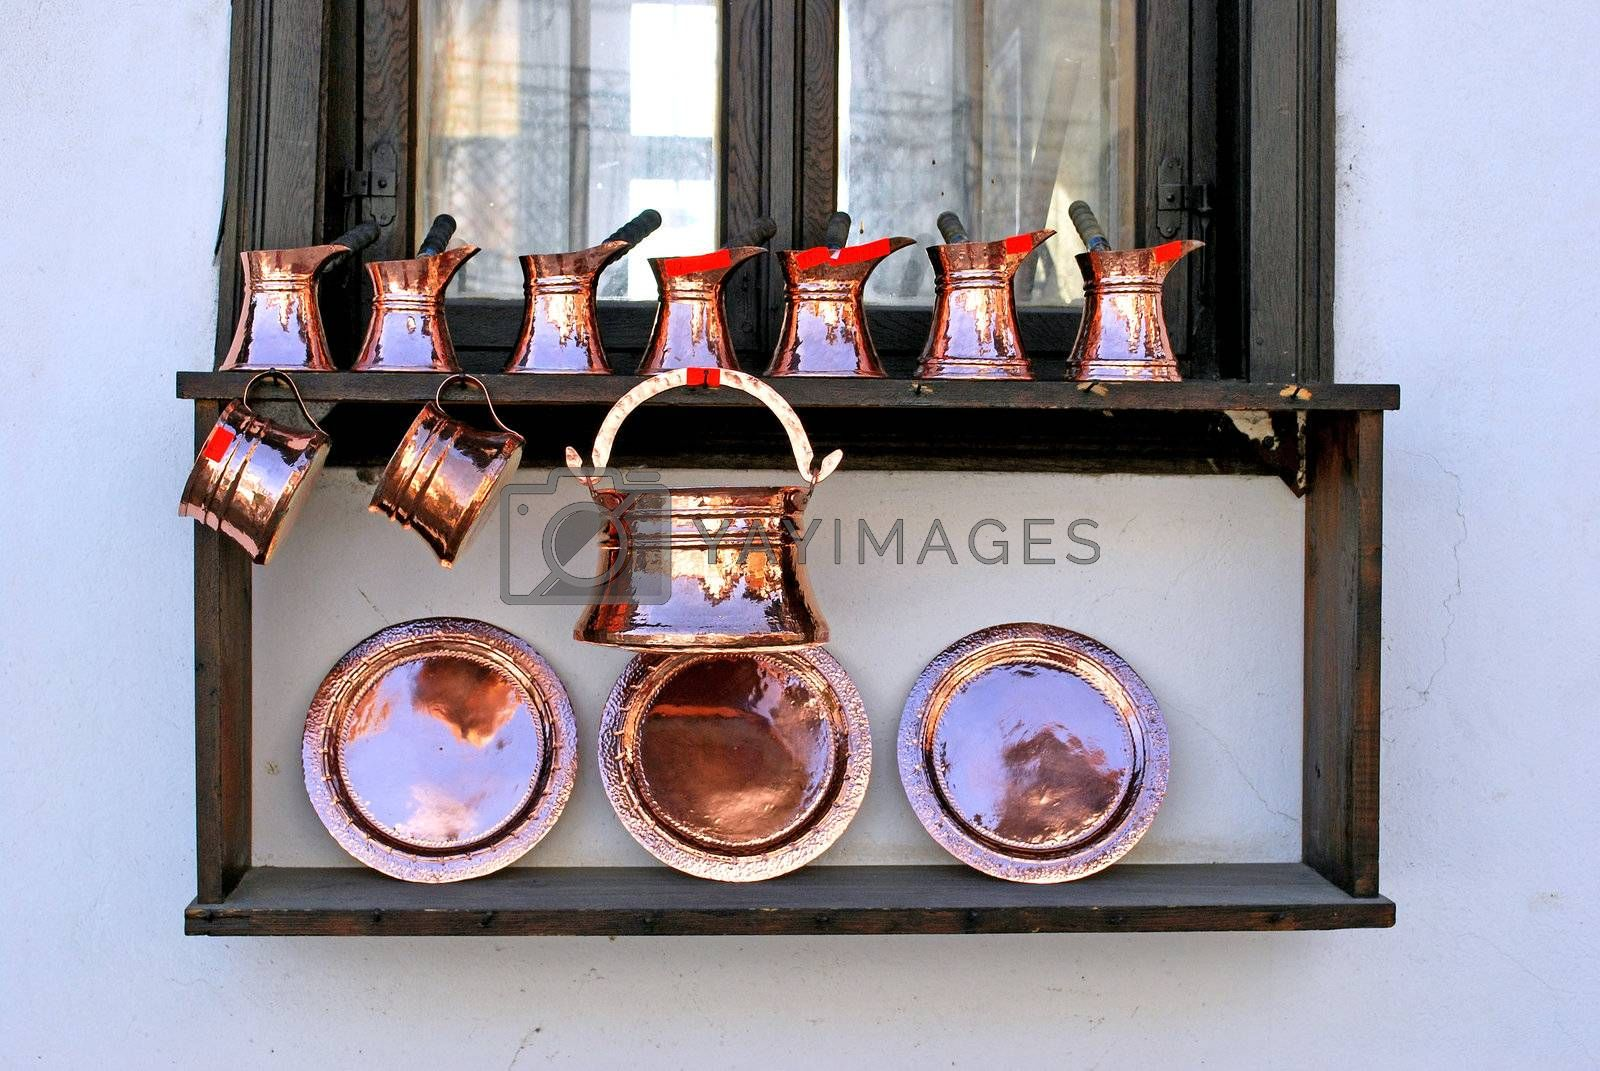 Royalty free image of copper utensils by Dessie_bg